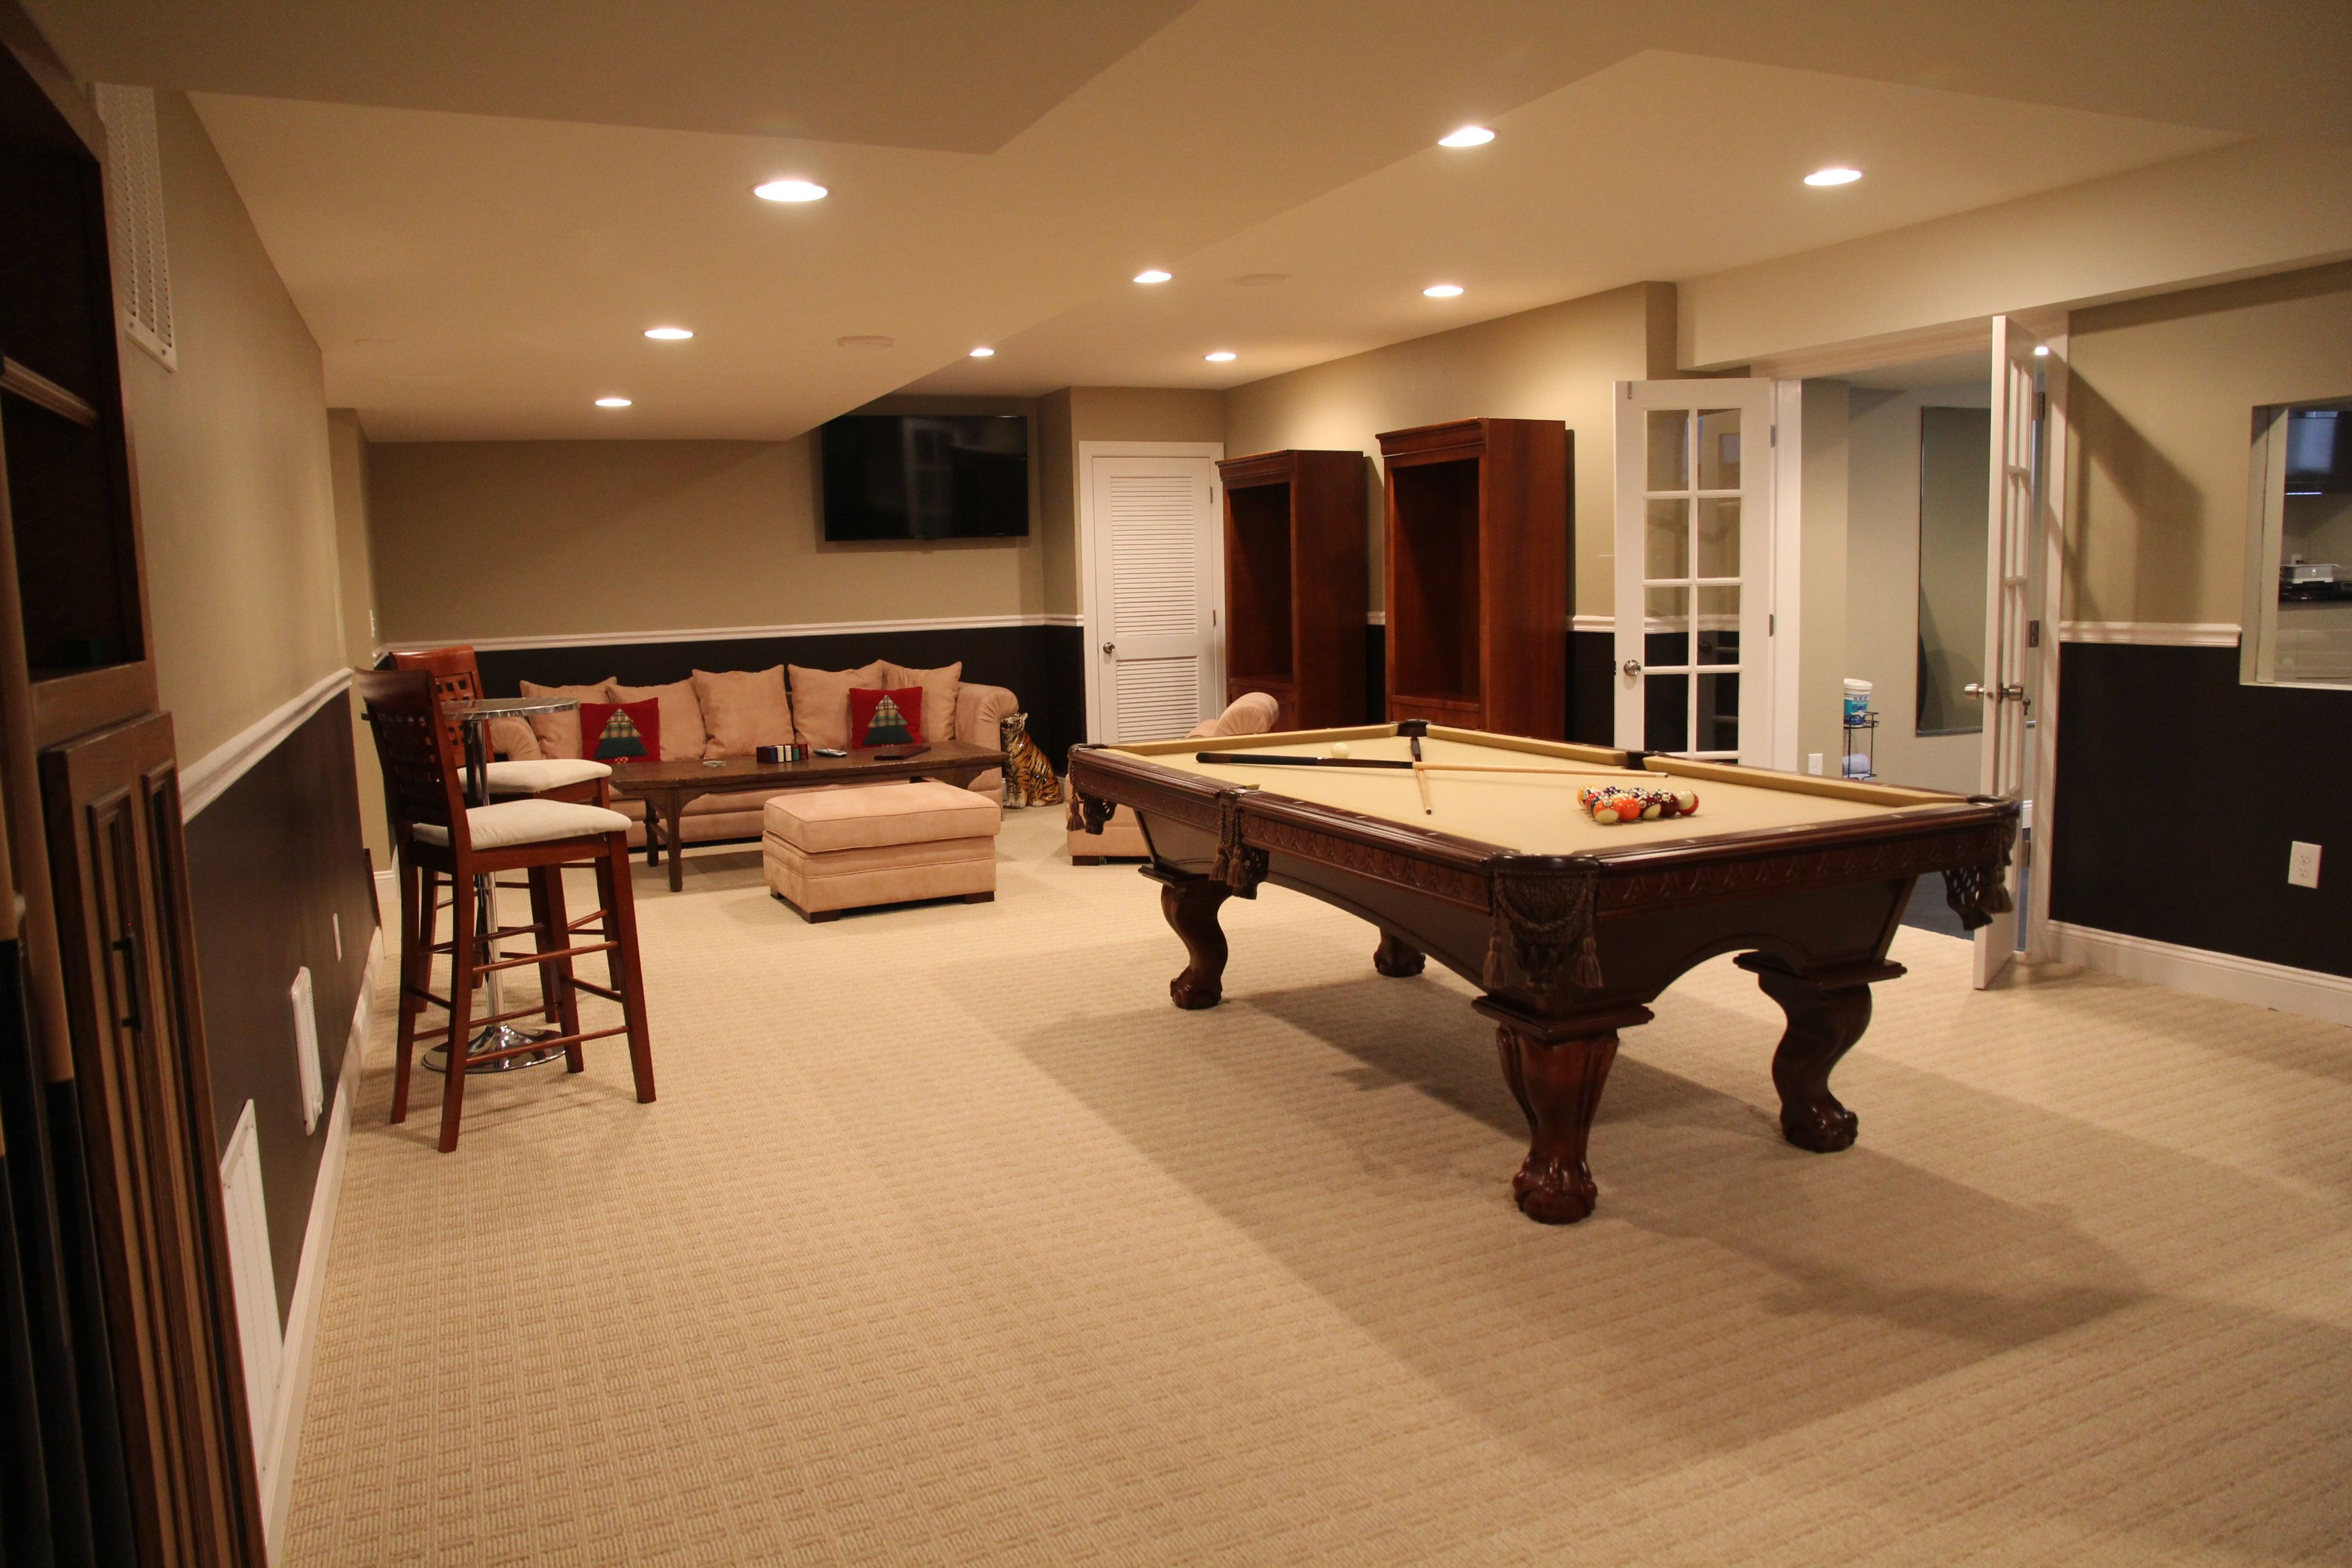 Pool Table Room Home Design Photos Cool Pool Table Room Ideas Nice Home  Design Fantastical